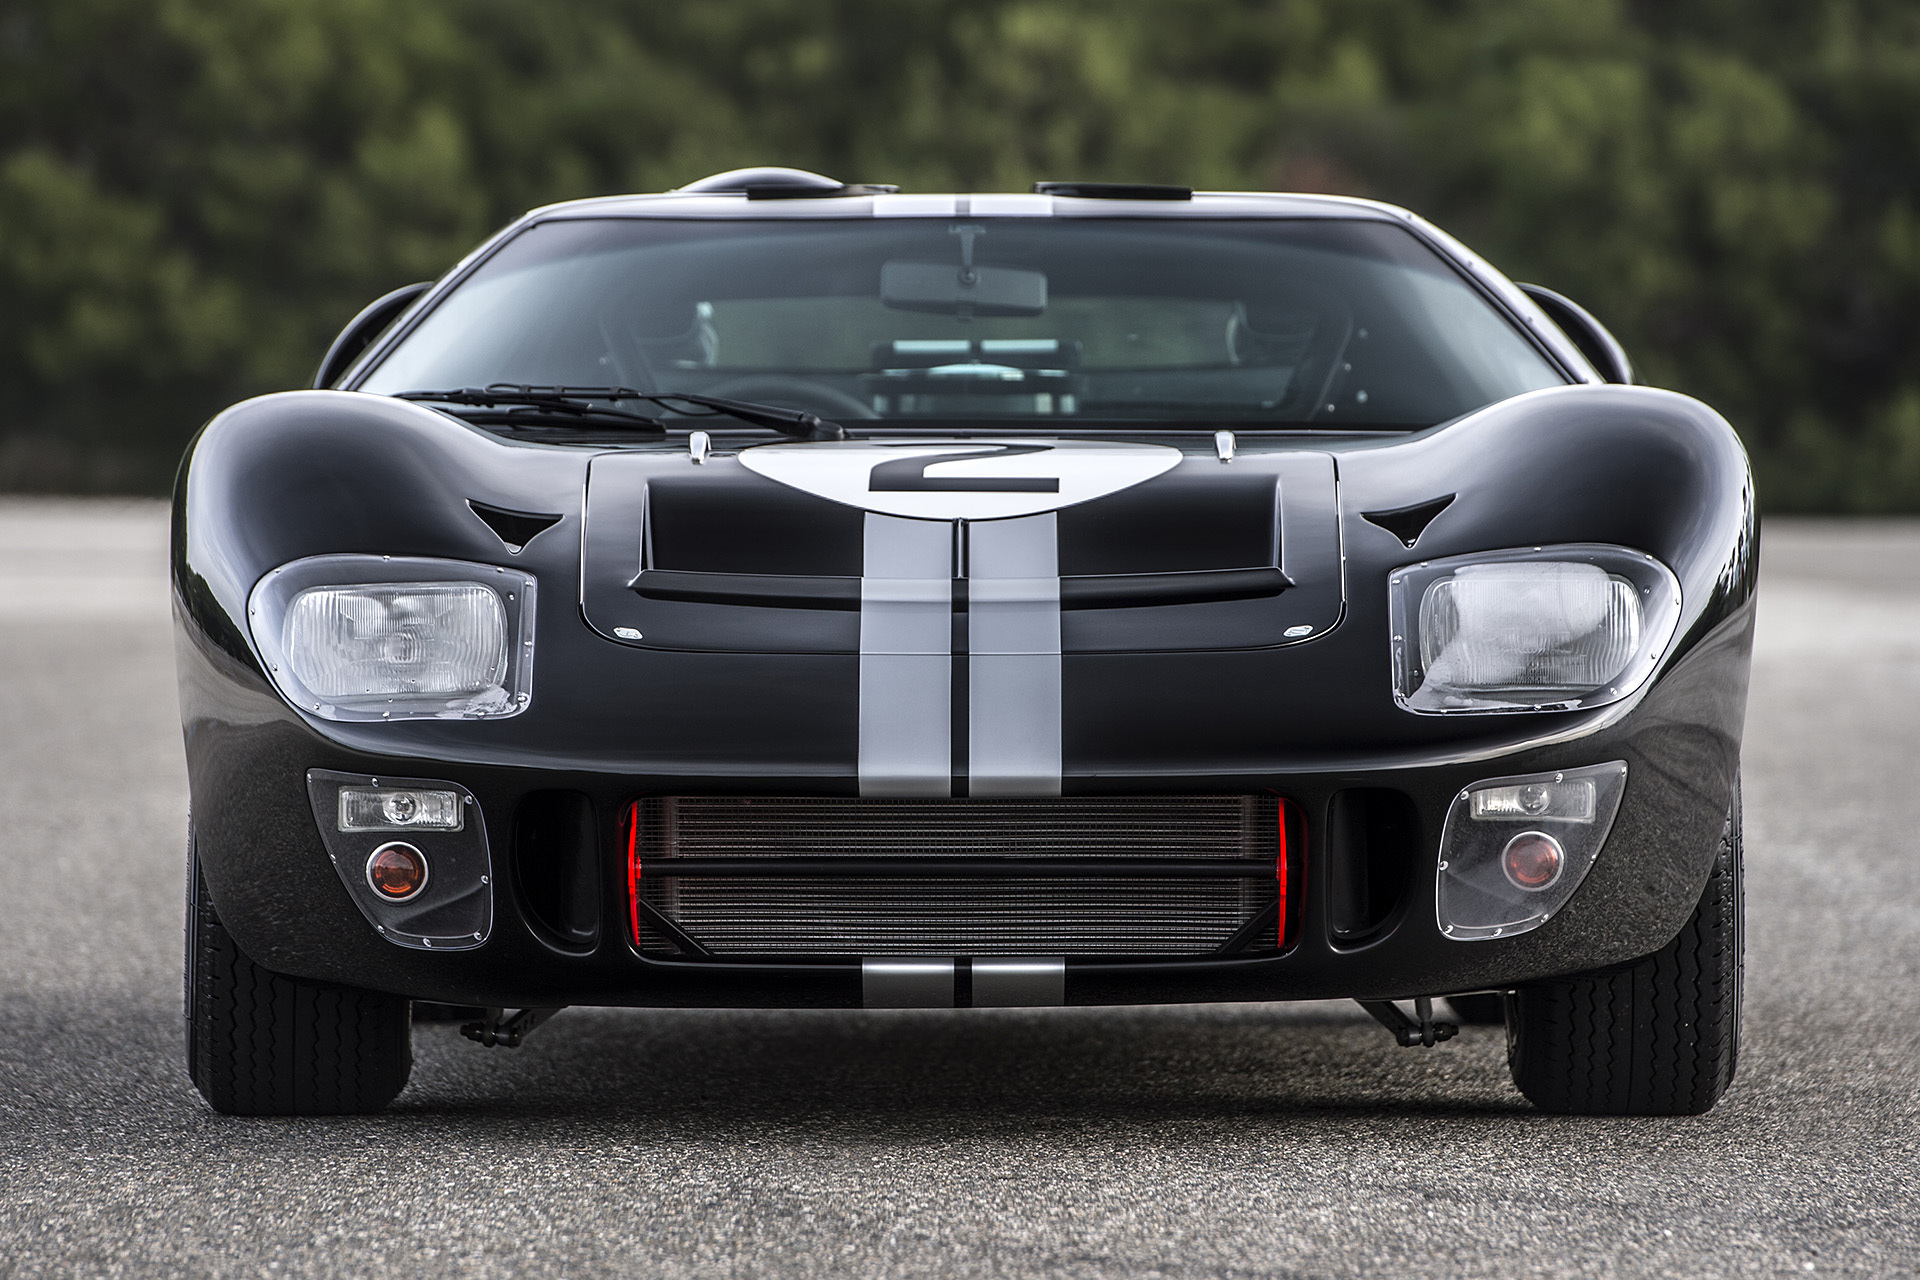 ford gt40 mkii limited edition created from superperformance 2